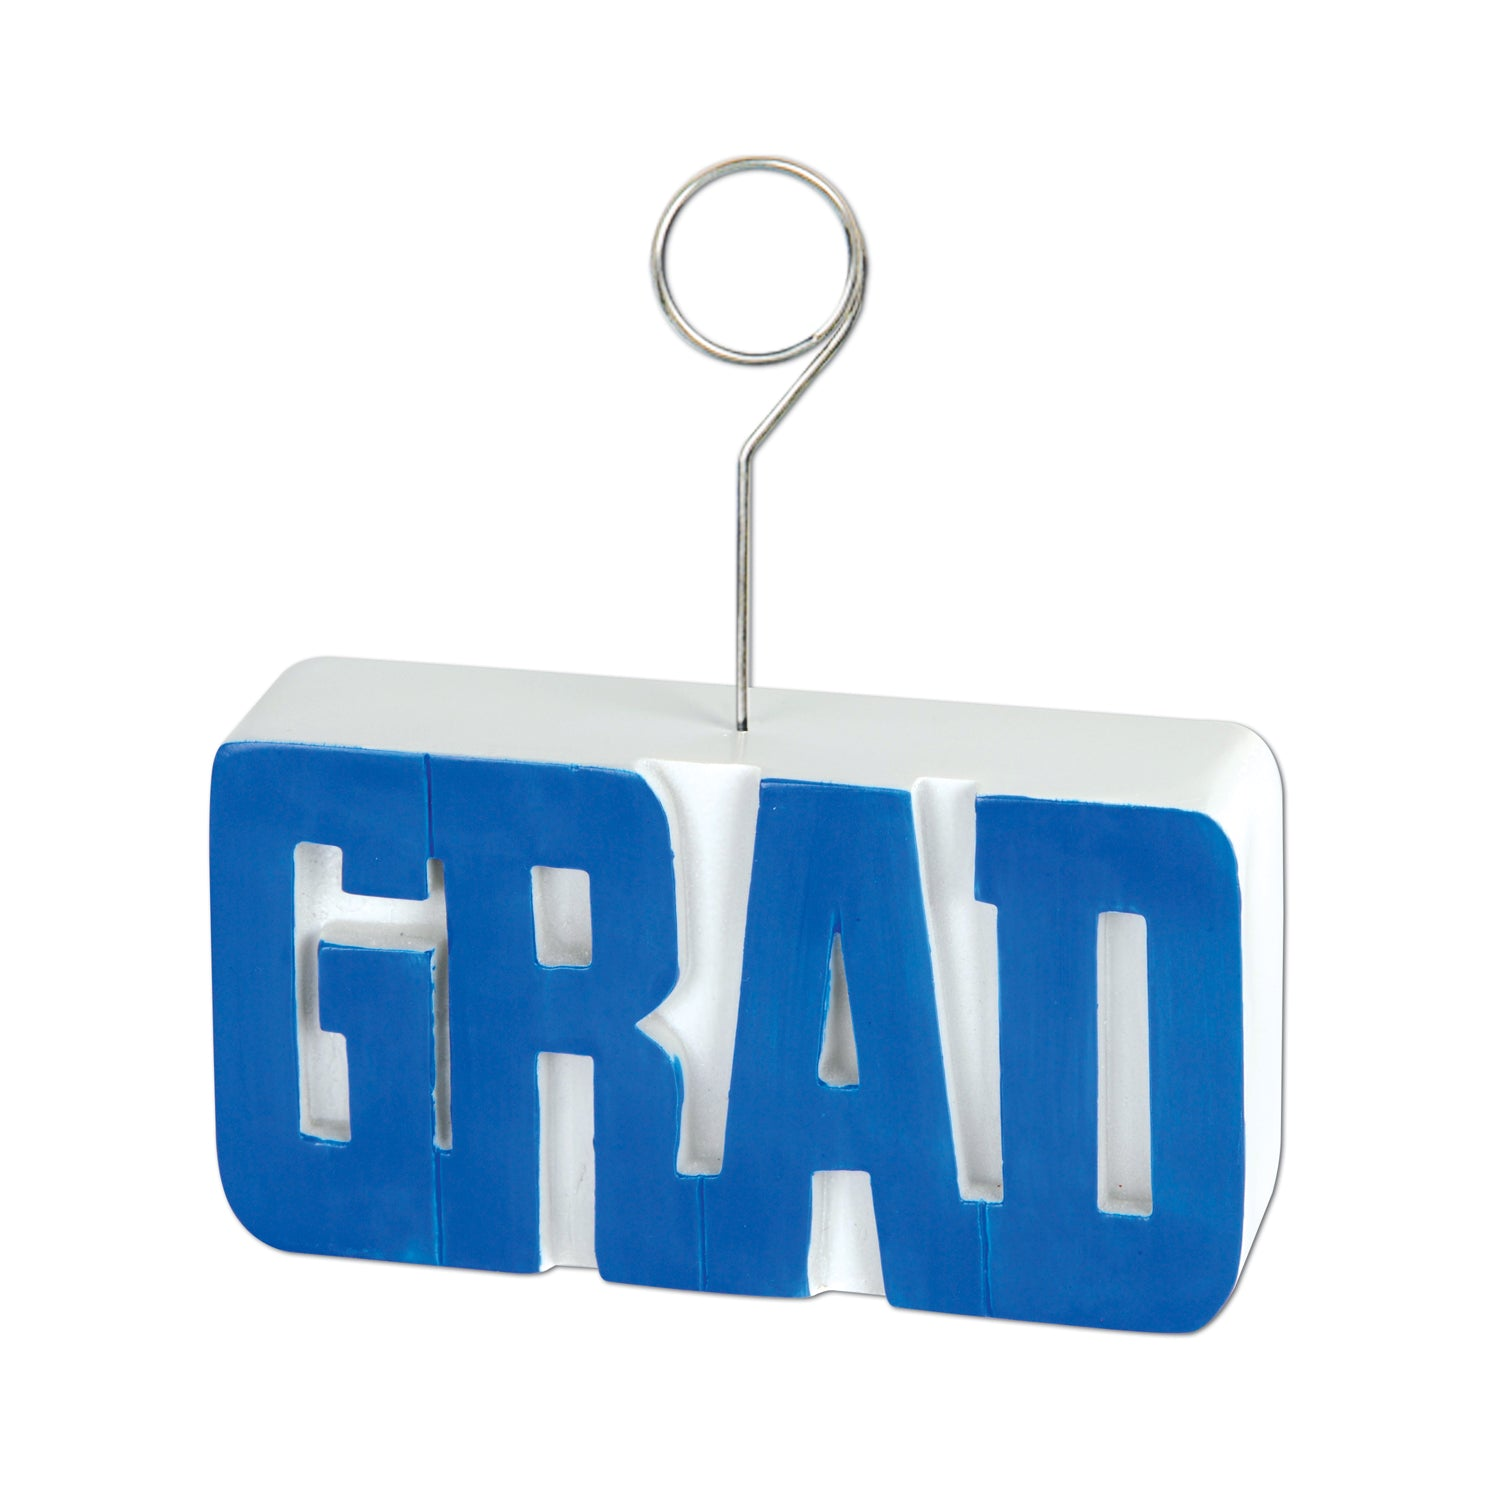 Grad Photo/Balloon Holder, blue by Beistle - Graduation Theme Decorations